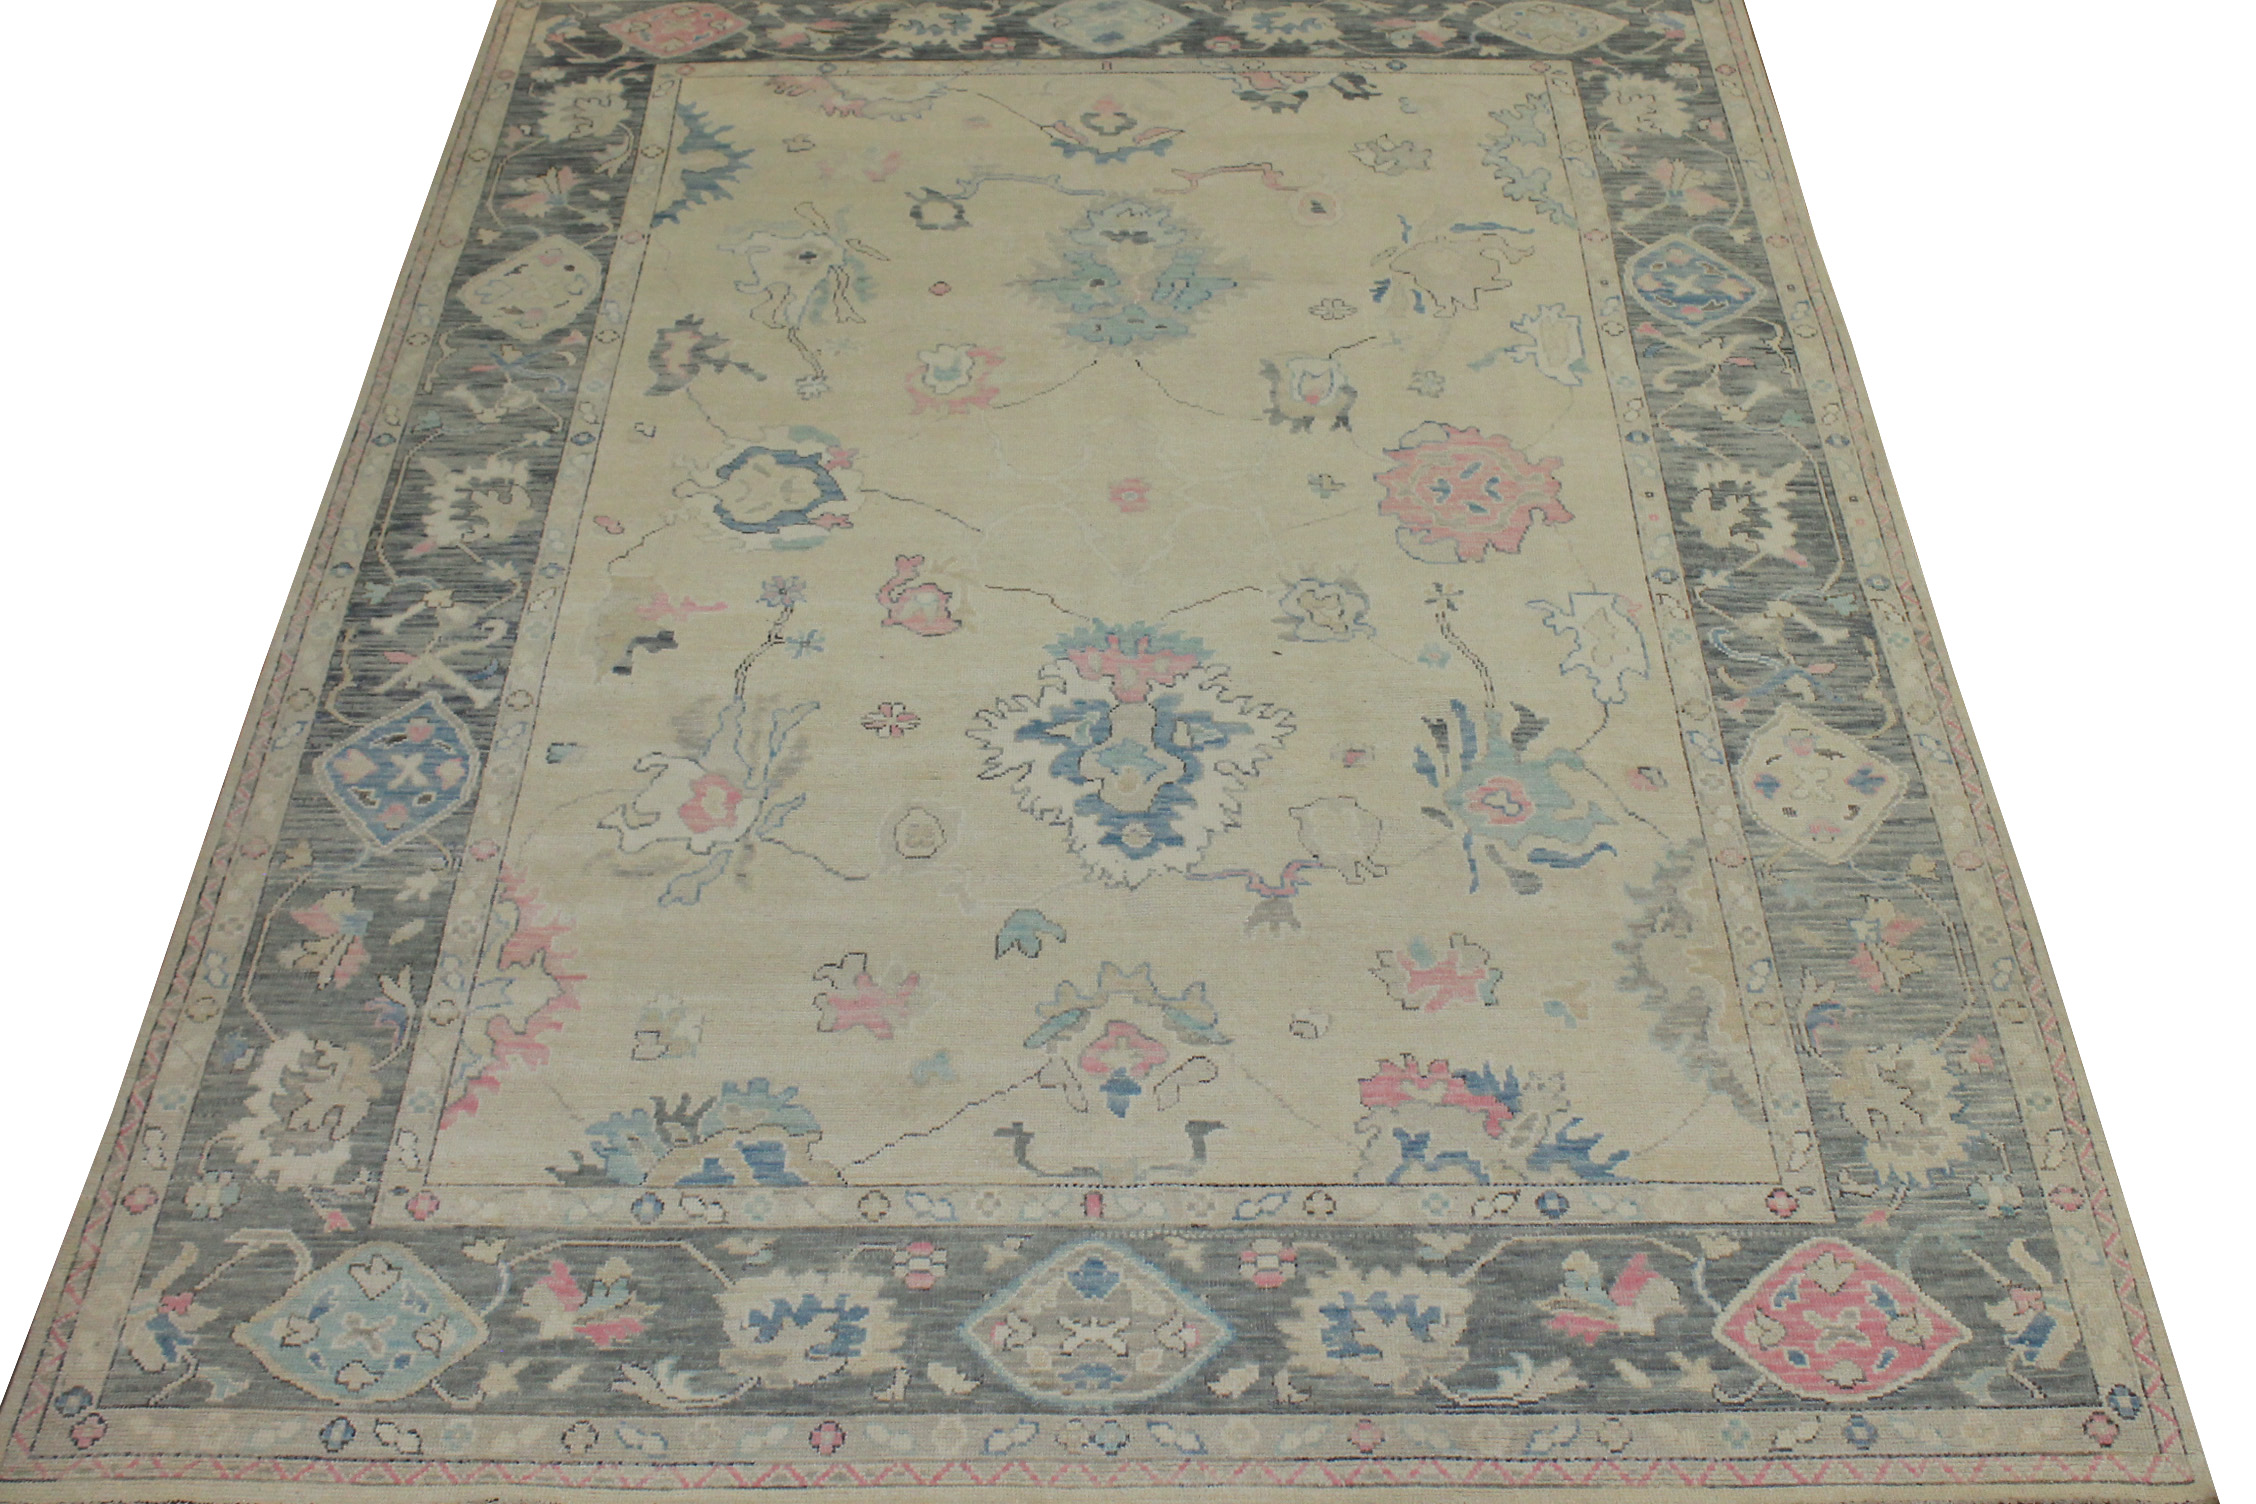 9x12 Oushak Hand Knotted Wool Area Rug - MR024437